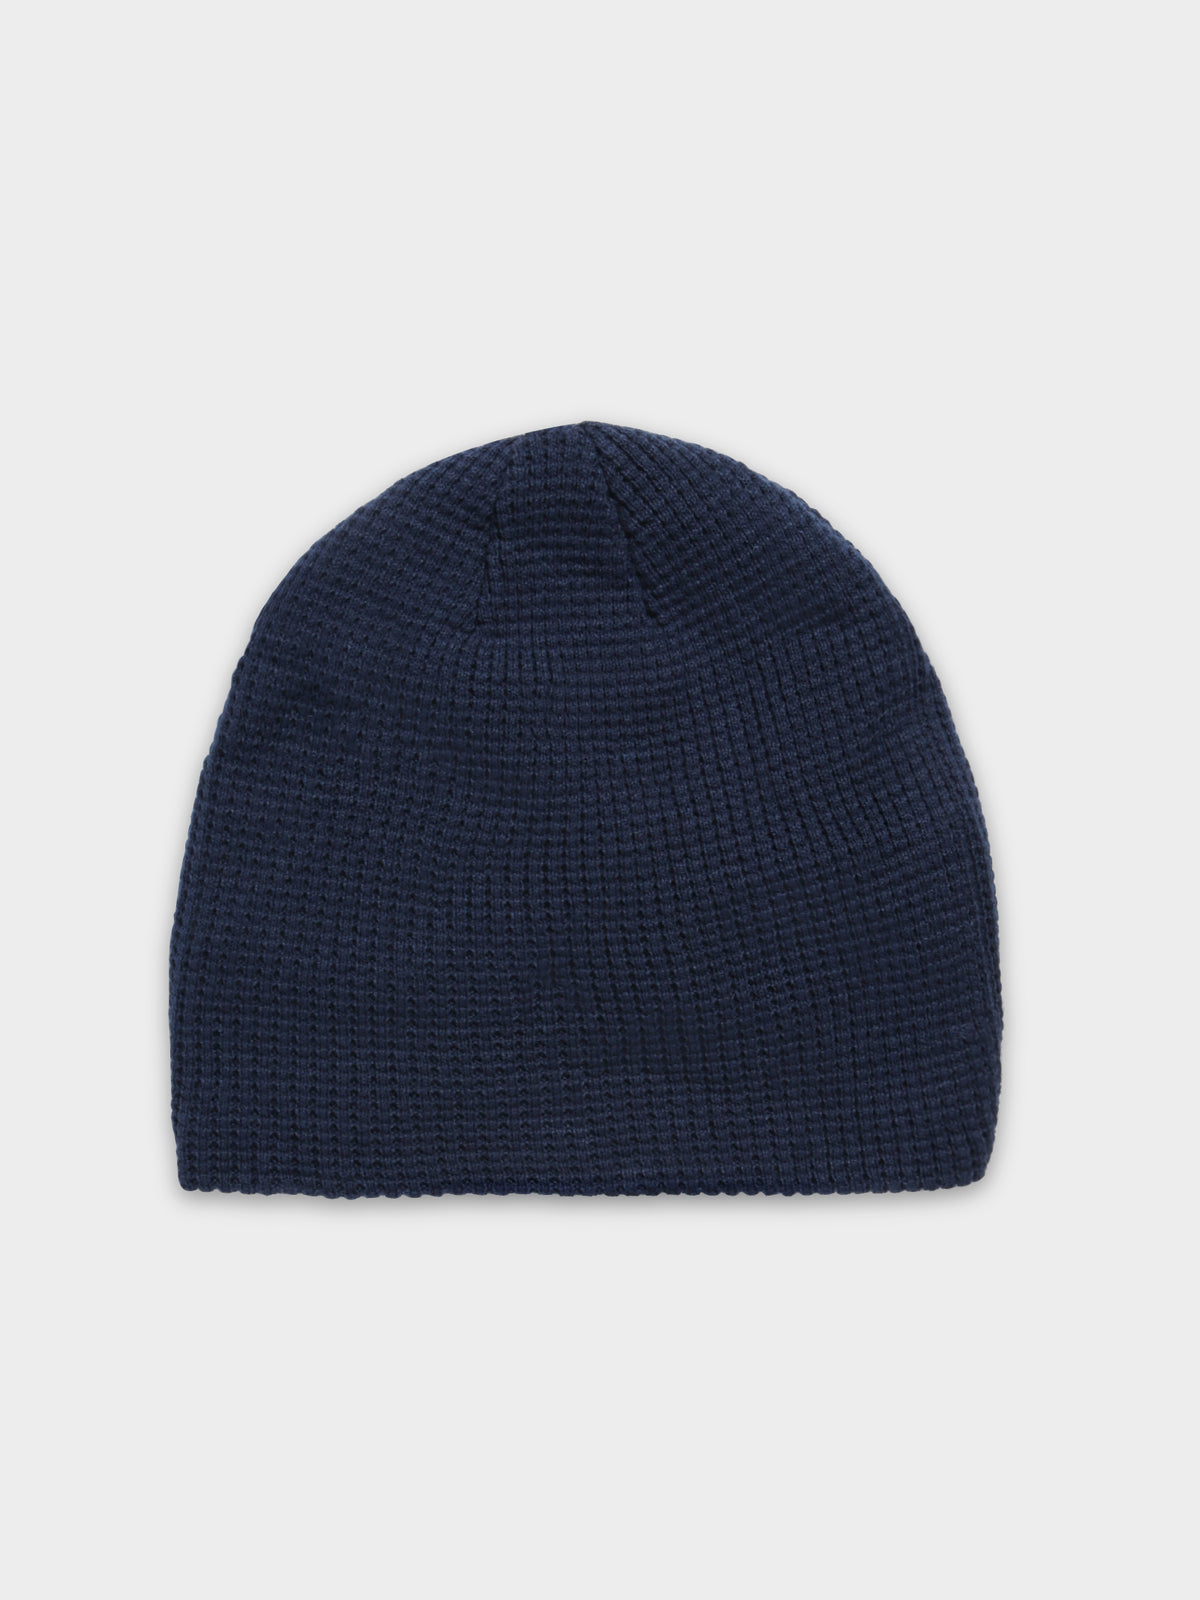 The Soma Beanie in Navy